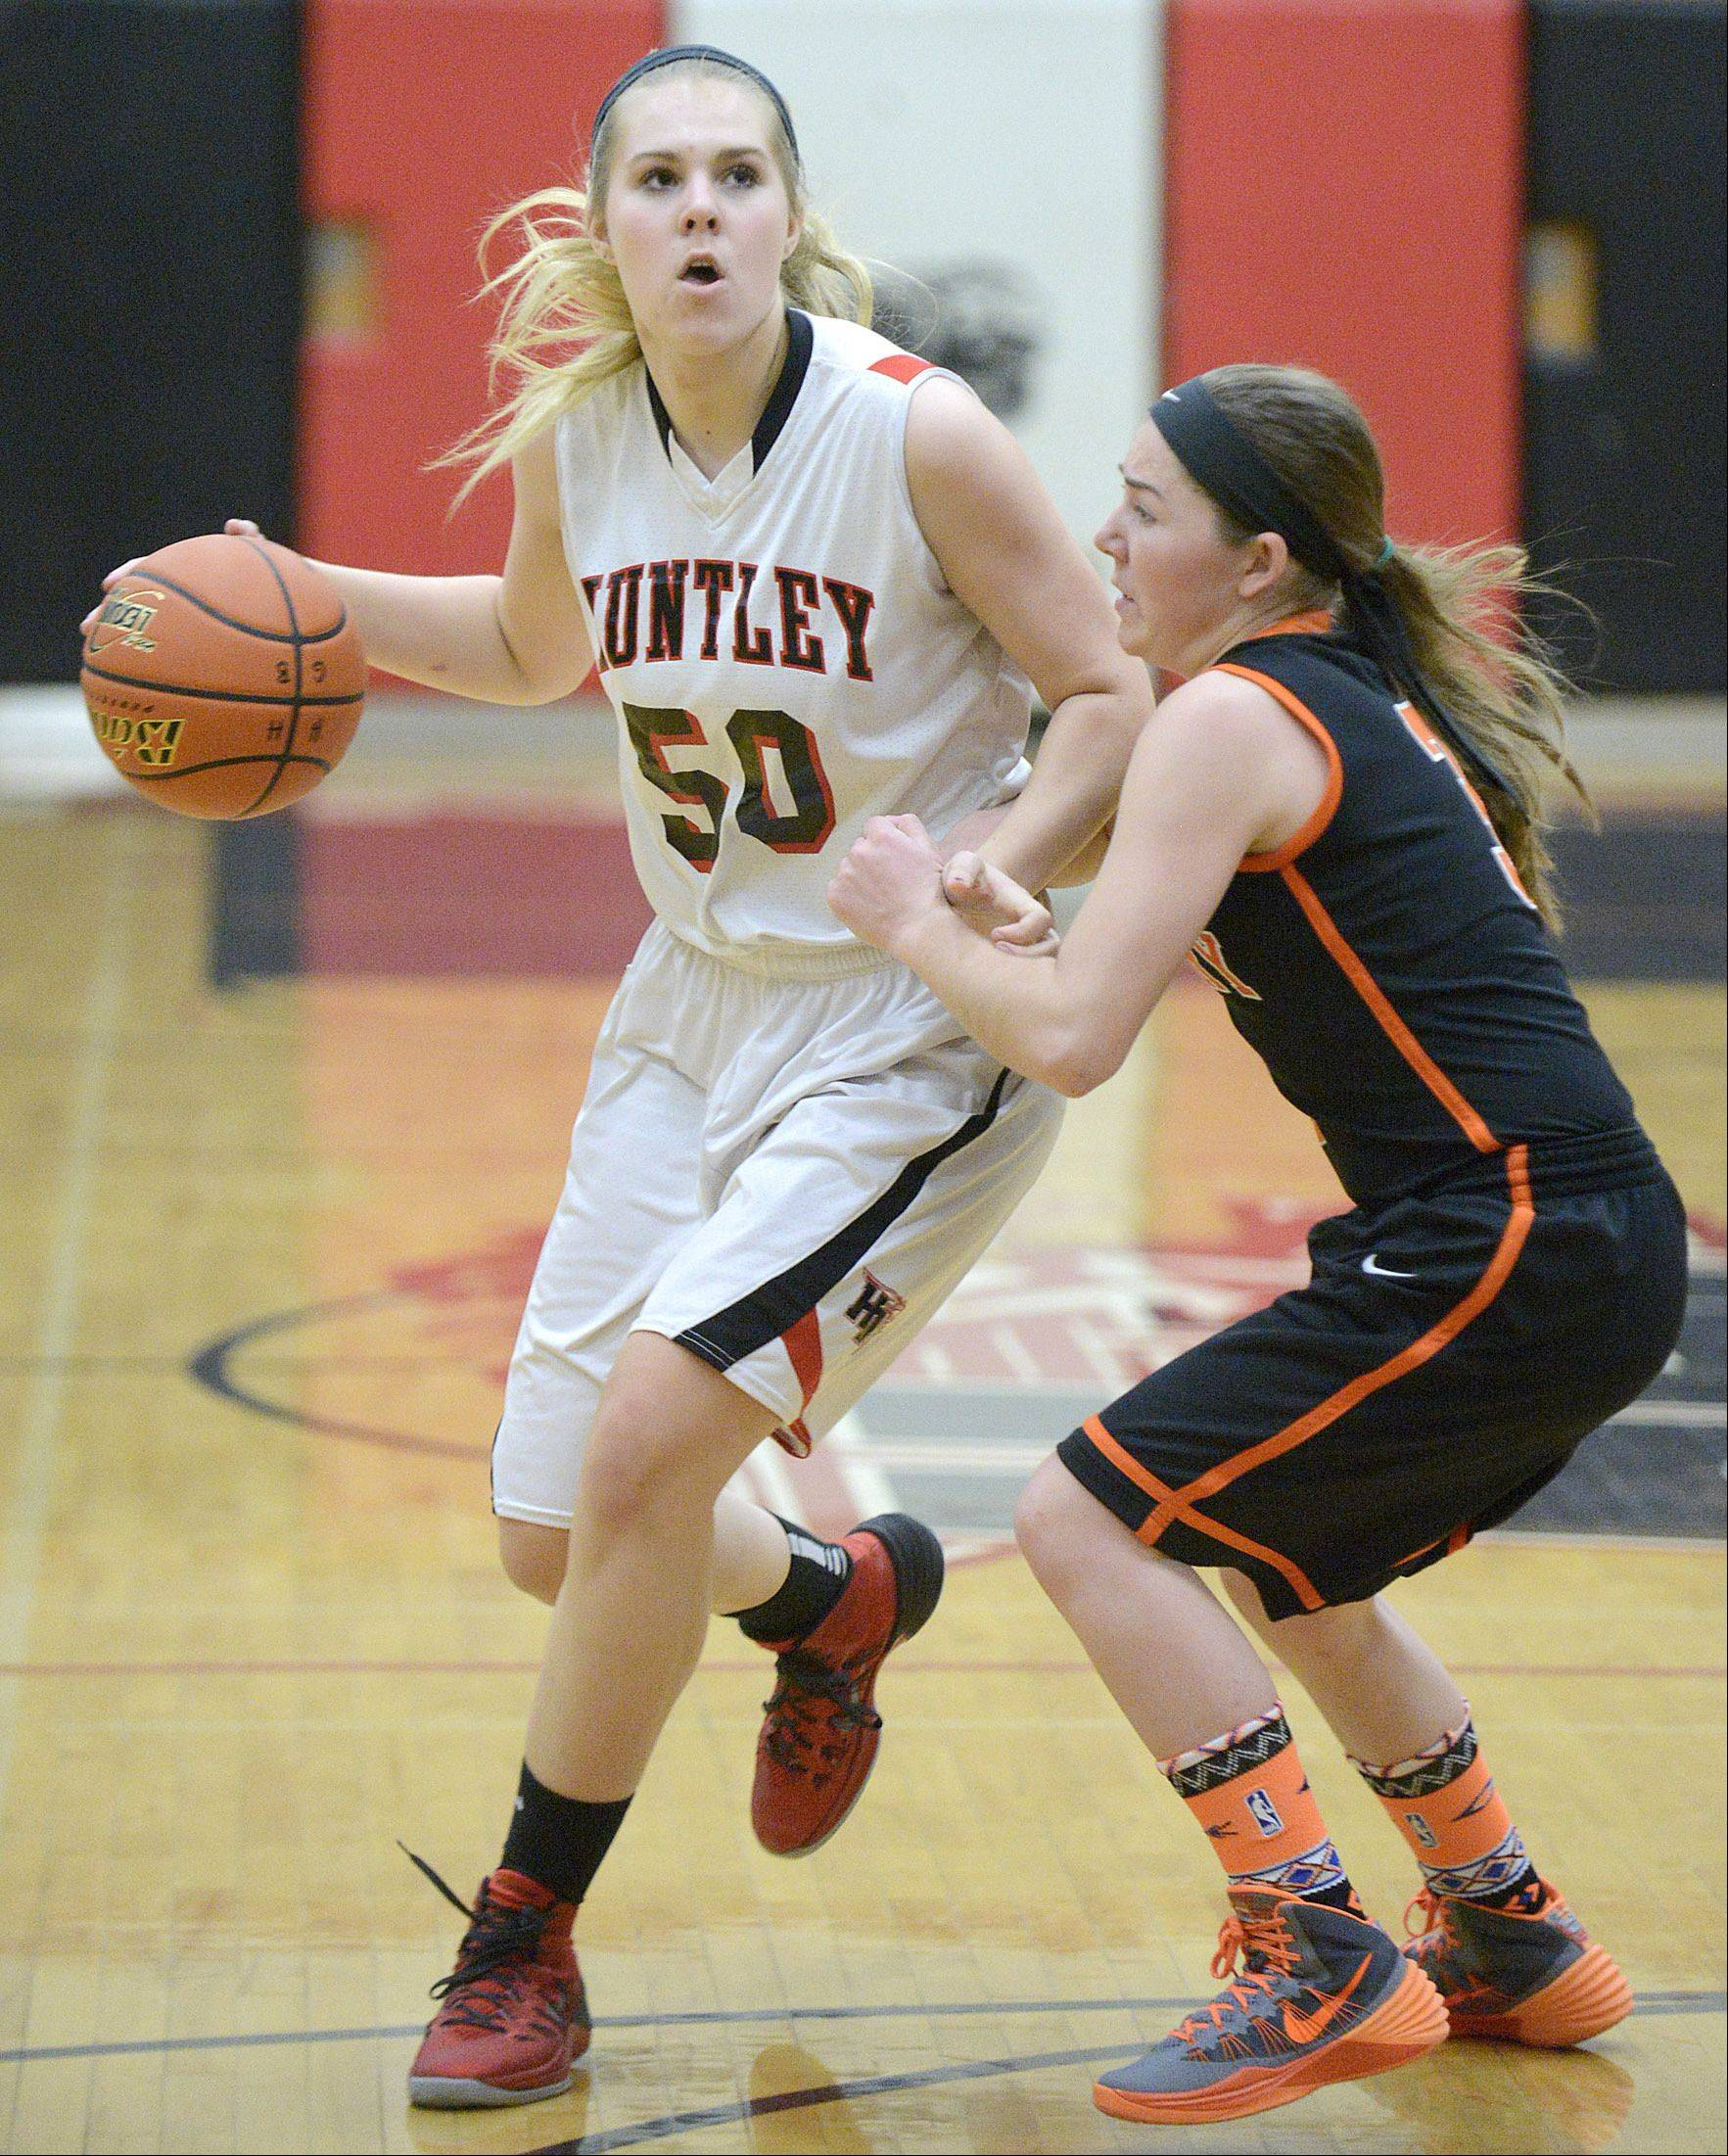 Huntley's Ali Andrews dribbles around McHenry's Carly Mattson in the first quarter.